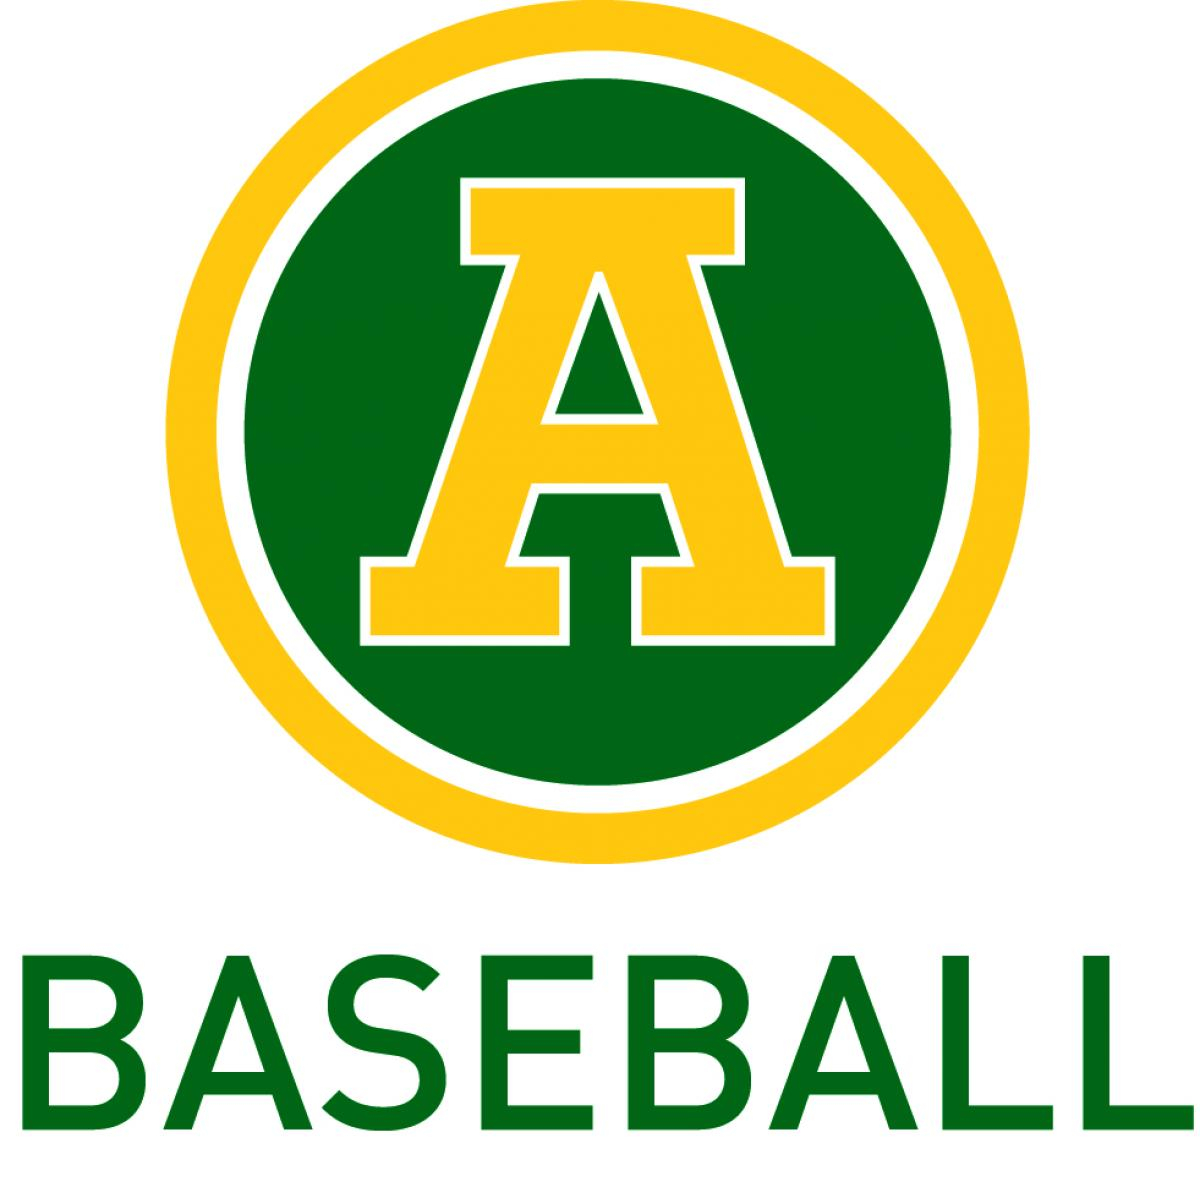 UNIVERSITY OF ALBERTA BASEBALL CLUB SPONSORSHIP FRAMEWORK